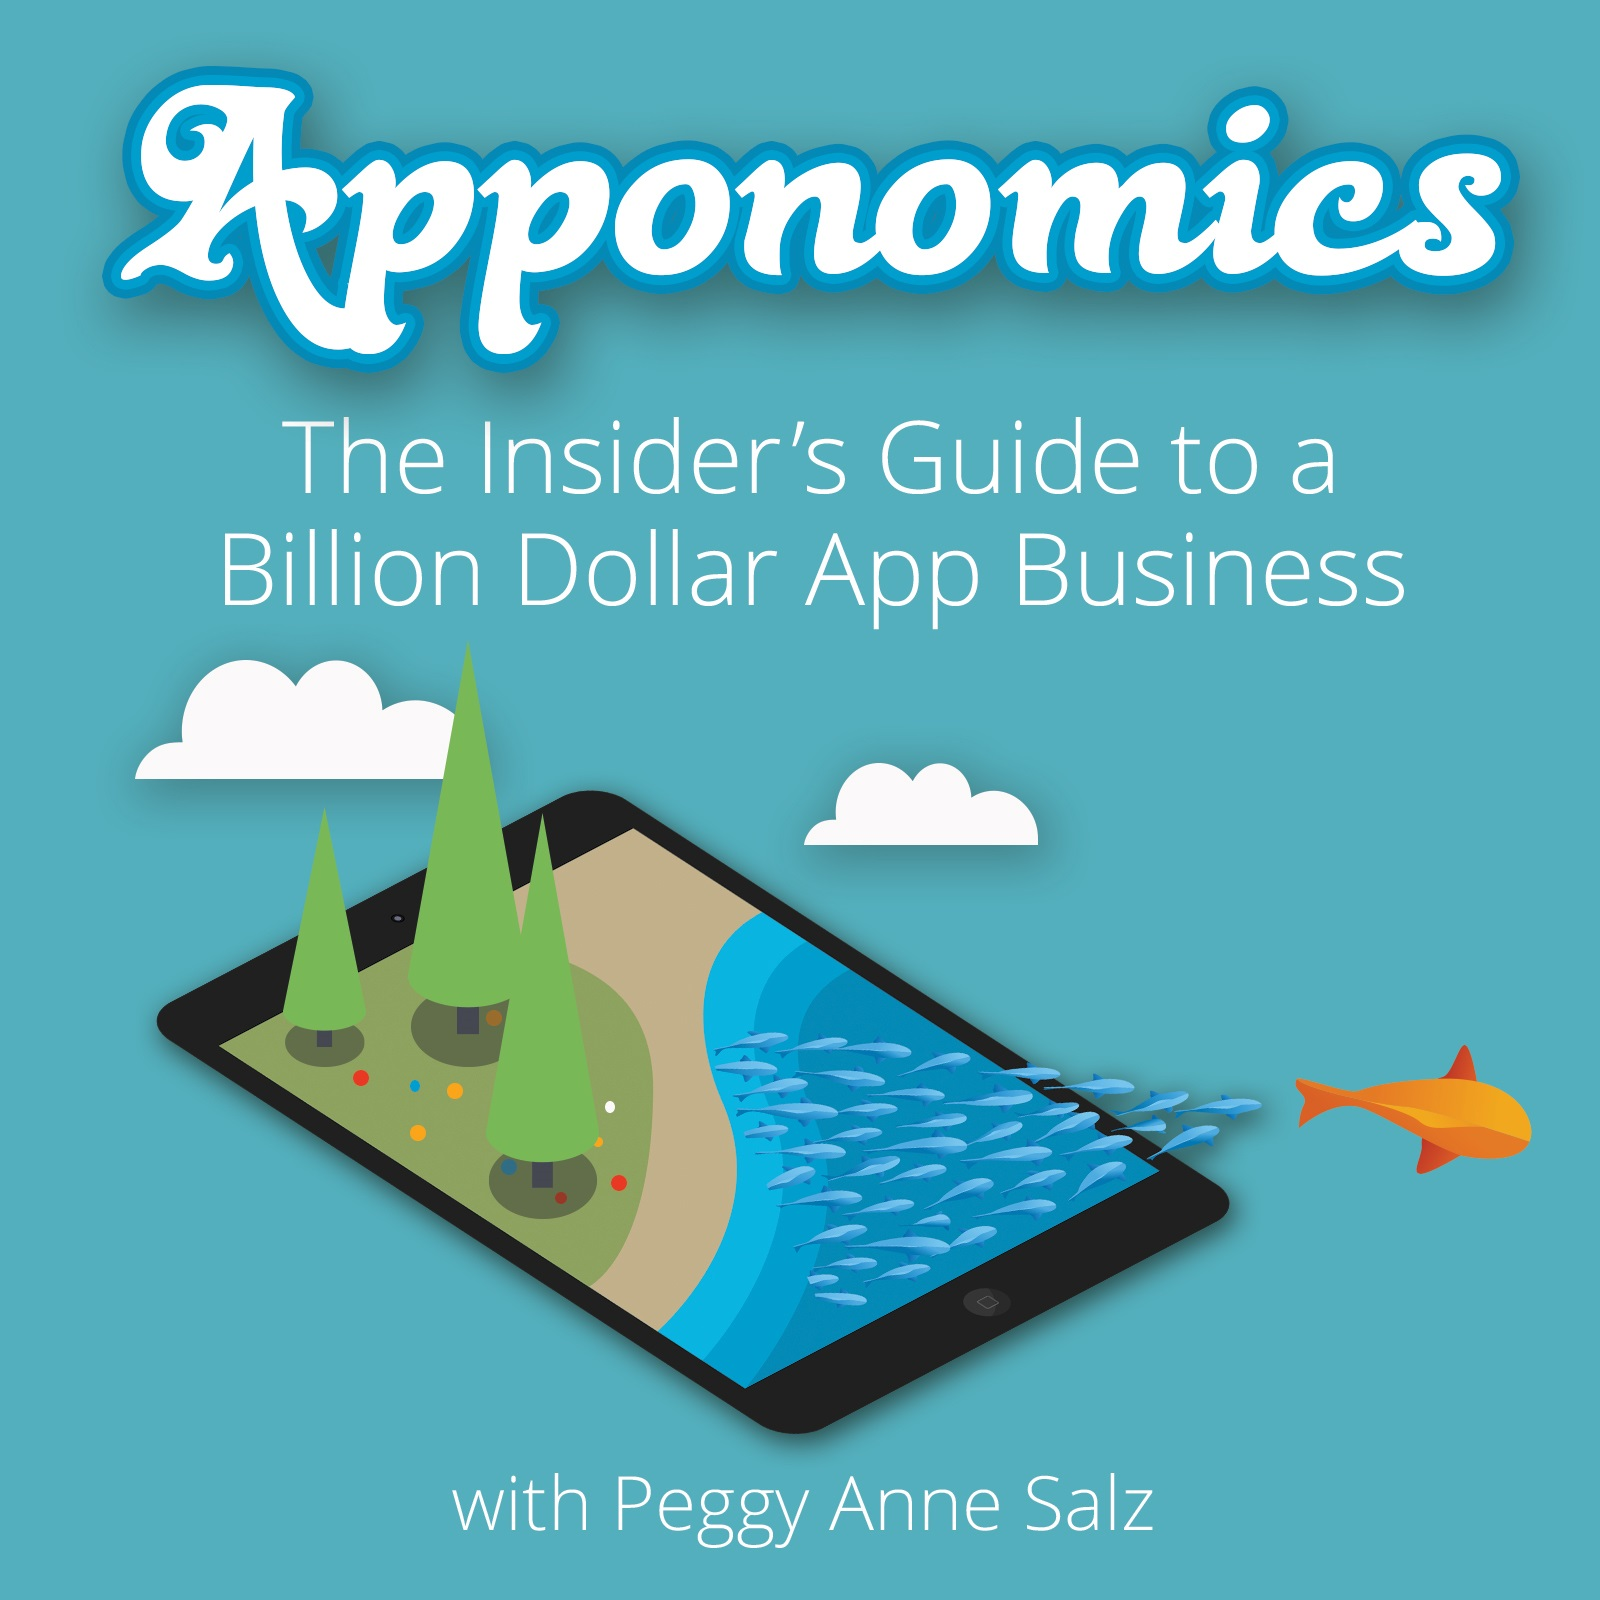 Apponomics: The Insider's Guide to a Billion Dollar App Business (InMobi, February 2014)